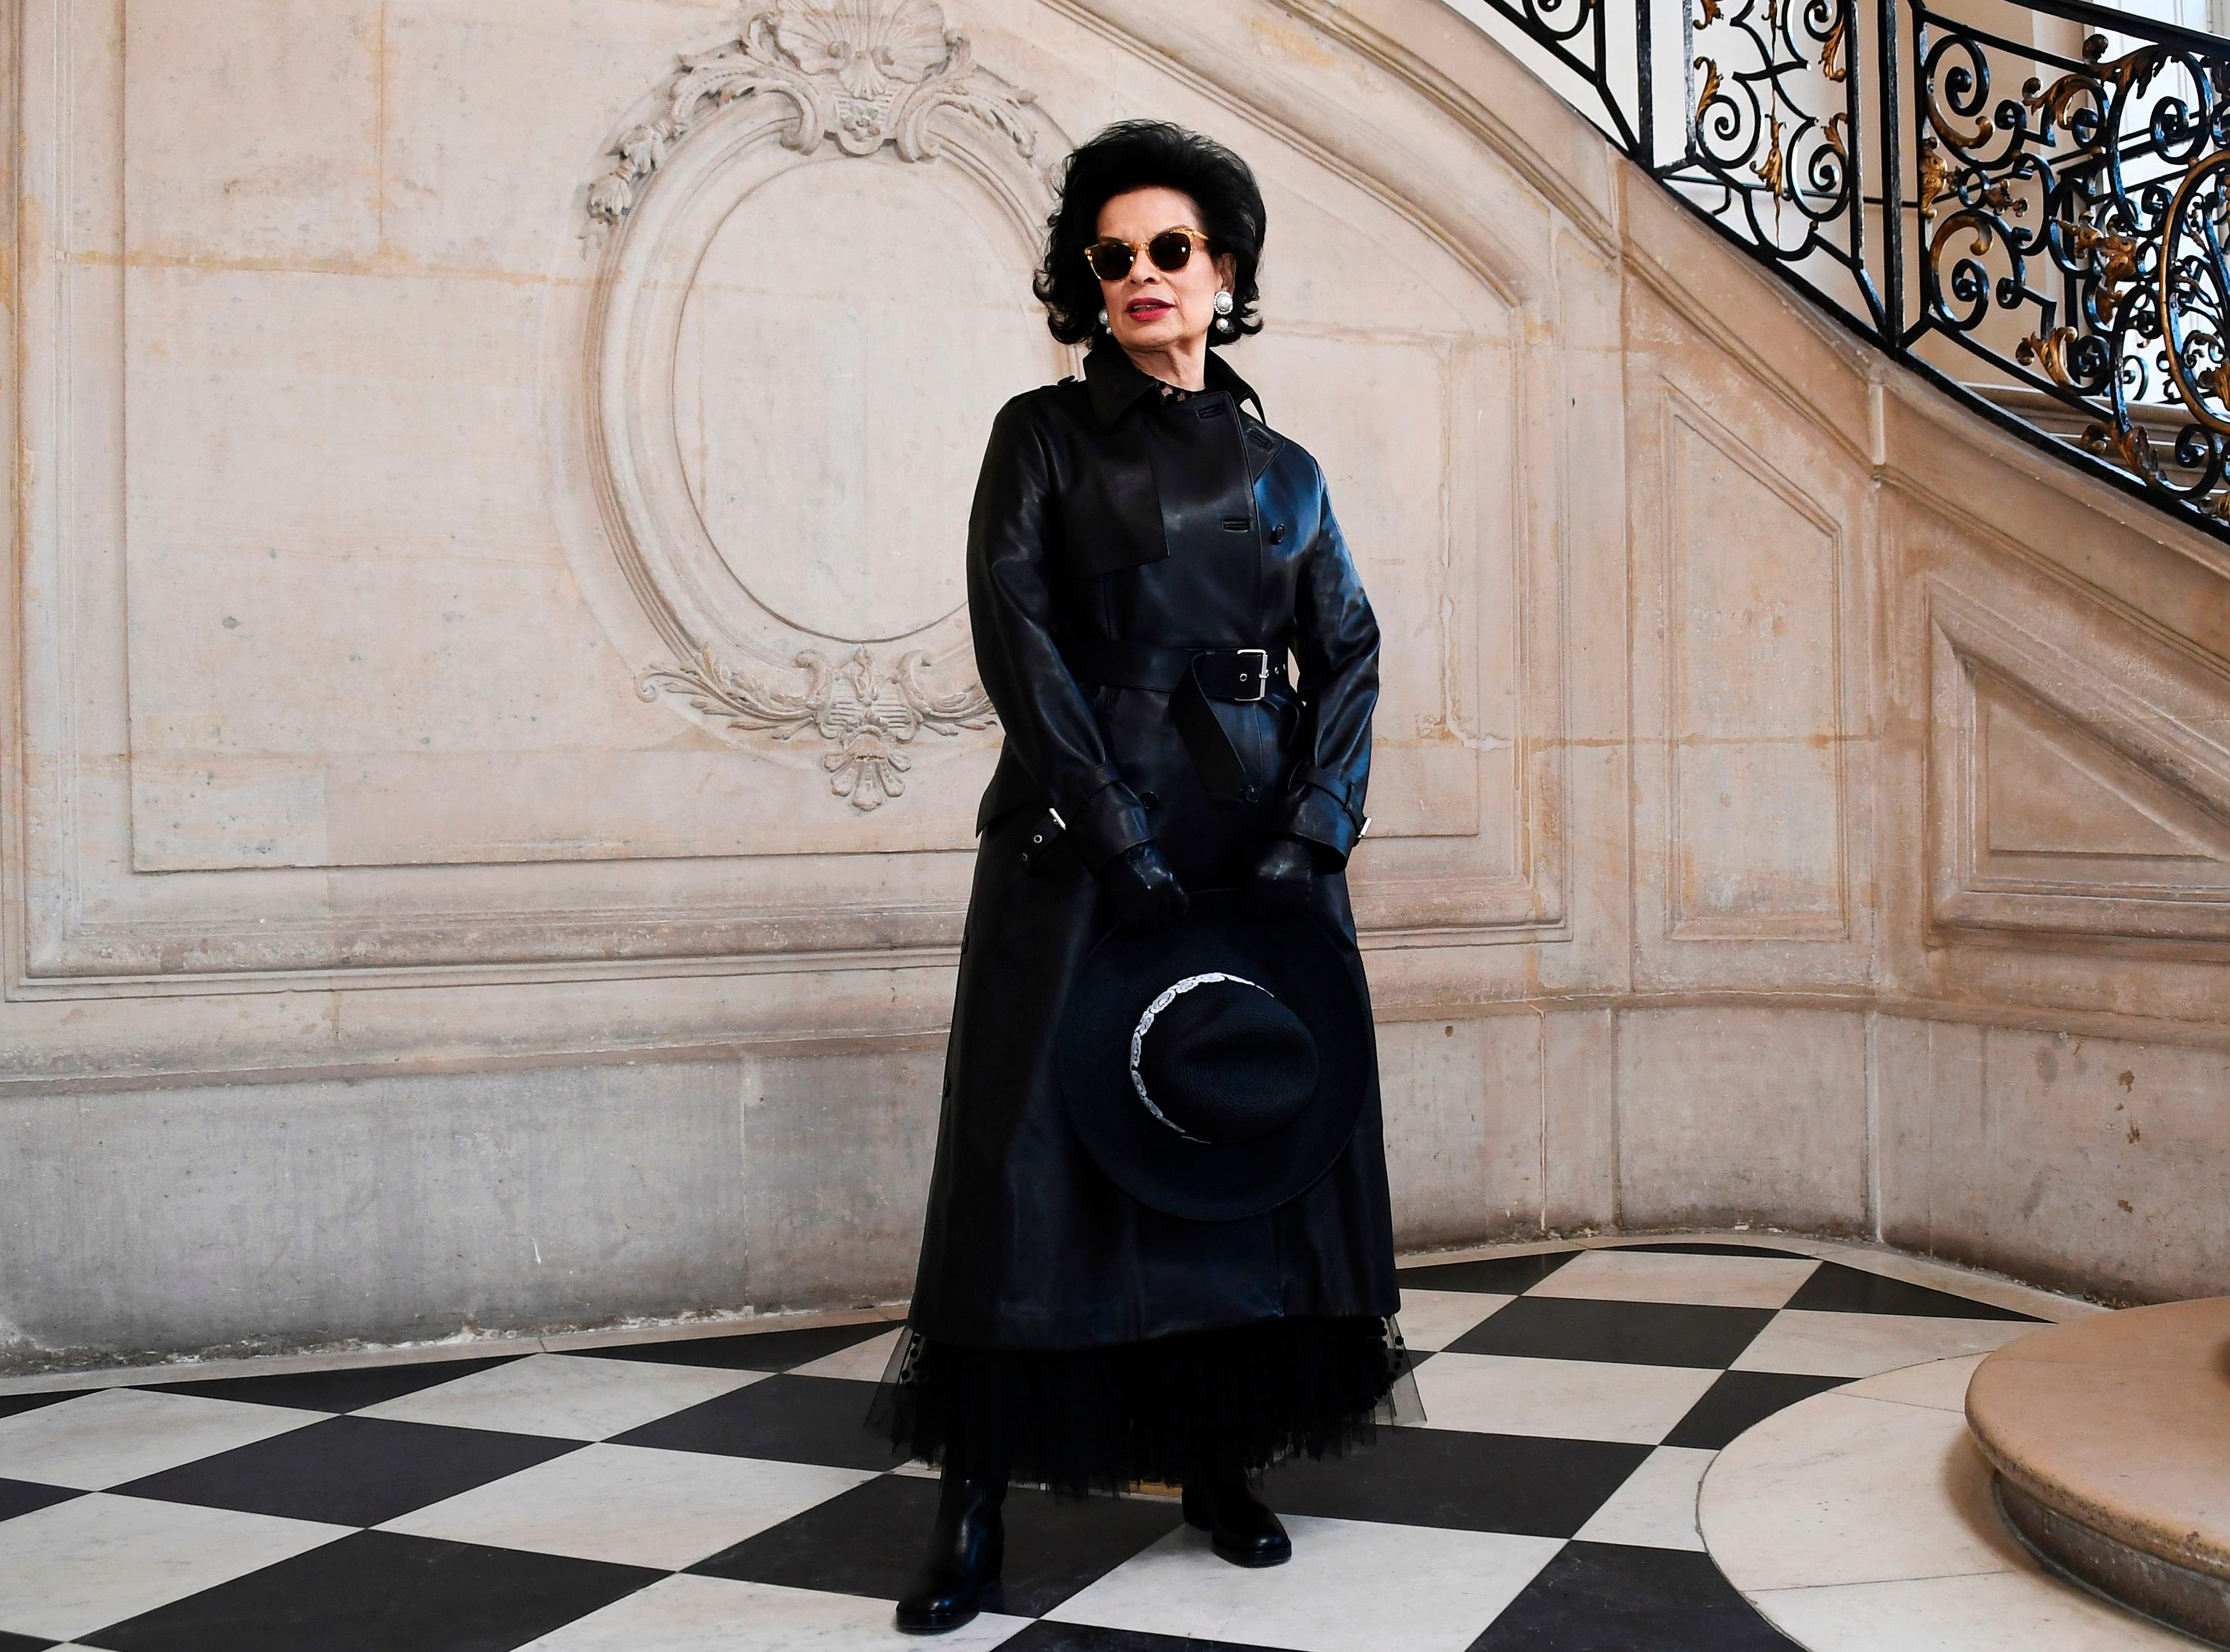 Nicaraguan celebrity and human rights advocate Bianca Jagger poses during a photocall prior to the 2019 Spring-Summer Haute Couture collection fashion show by Christian Dior in Paris, on January 21, 2019. (Photo by Anne-Christine POUJOULAT / AFP)ANNE-CHRISTINE POUJOULAT/AFP/Getty Images ORIG FILE ID: AFP_1CG67B